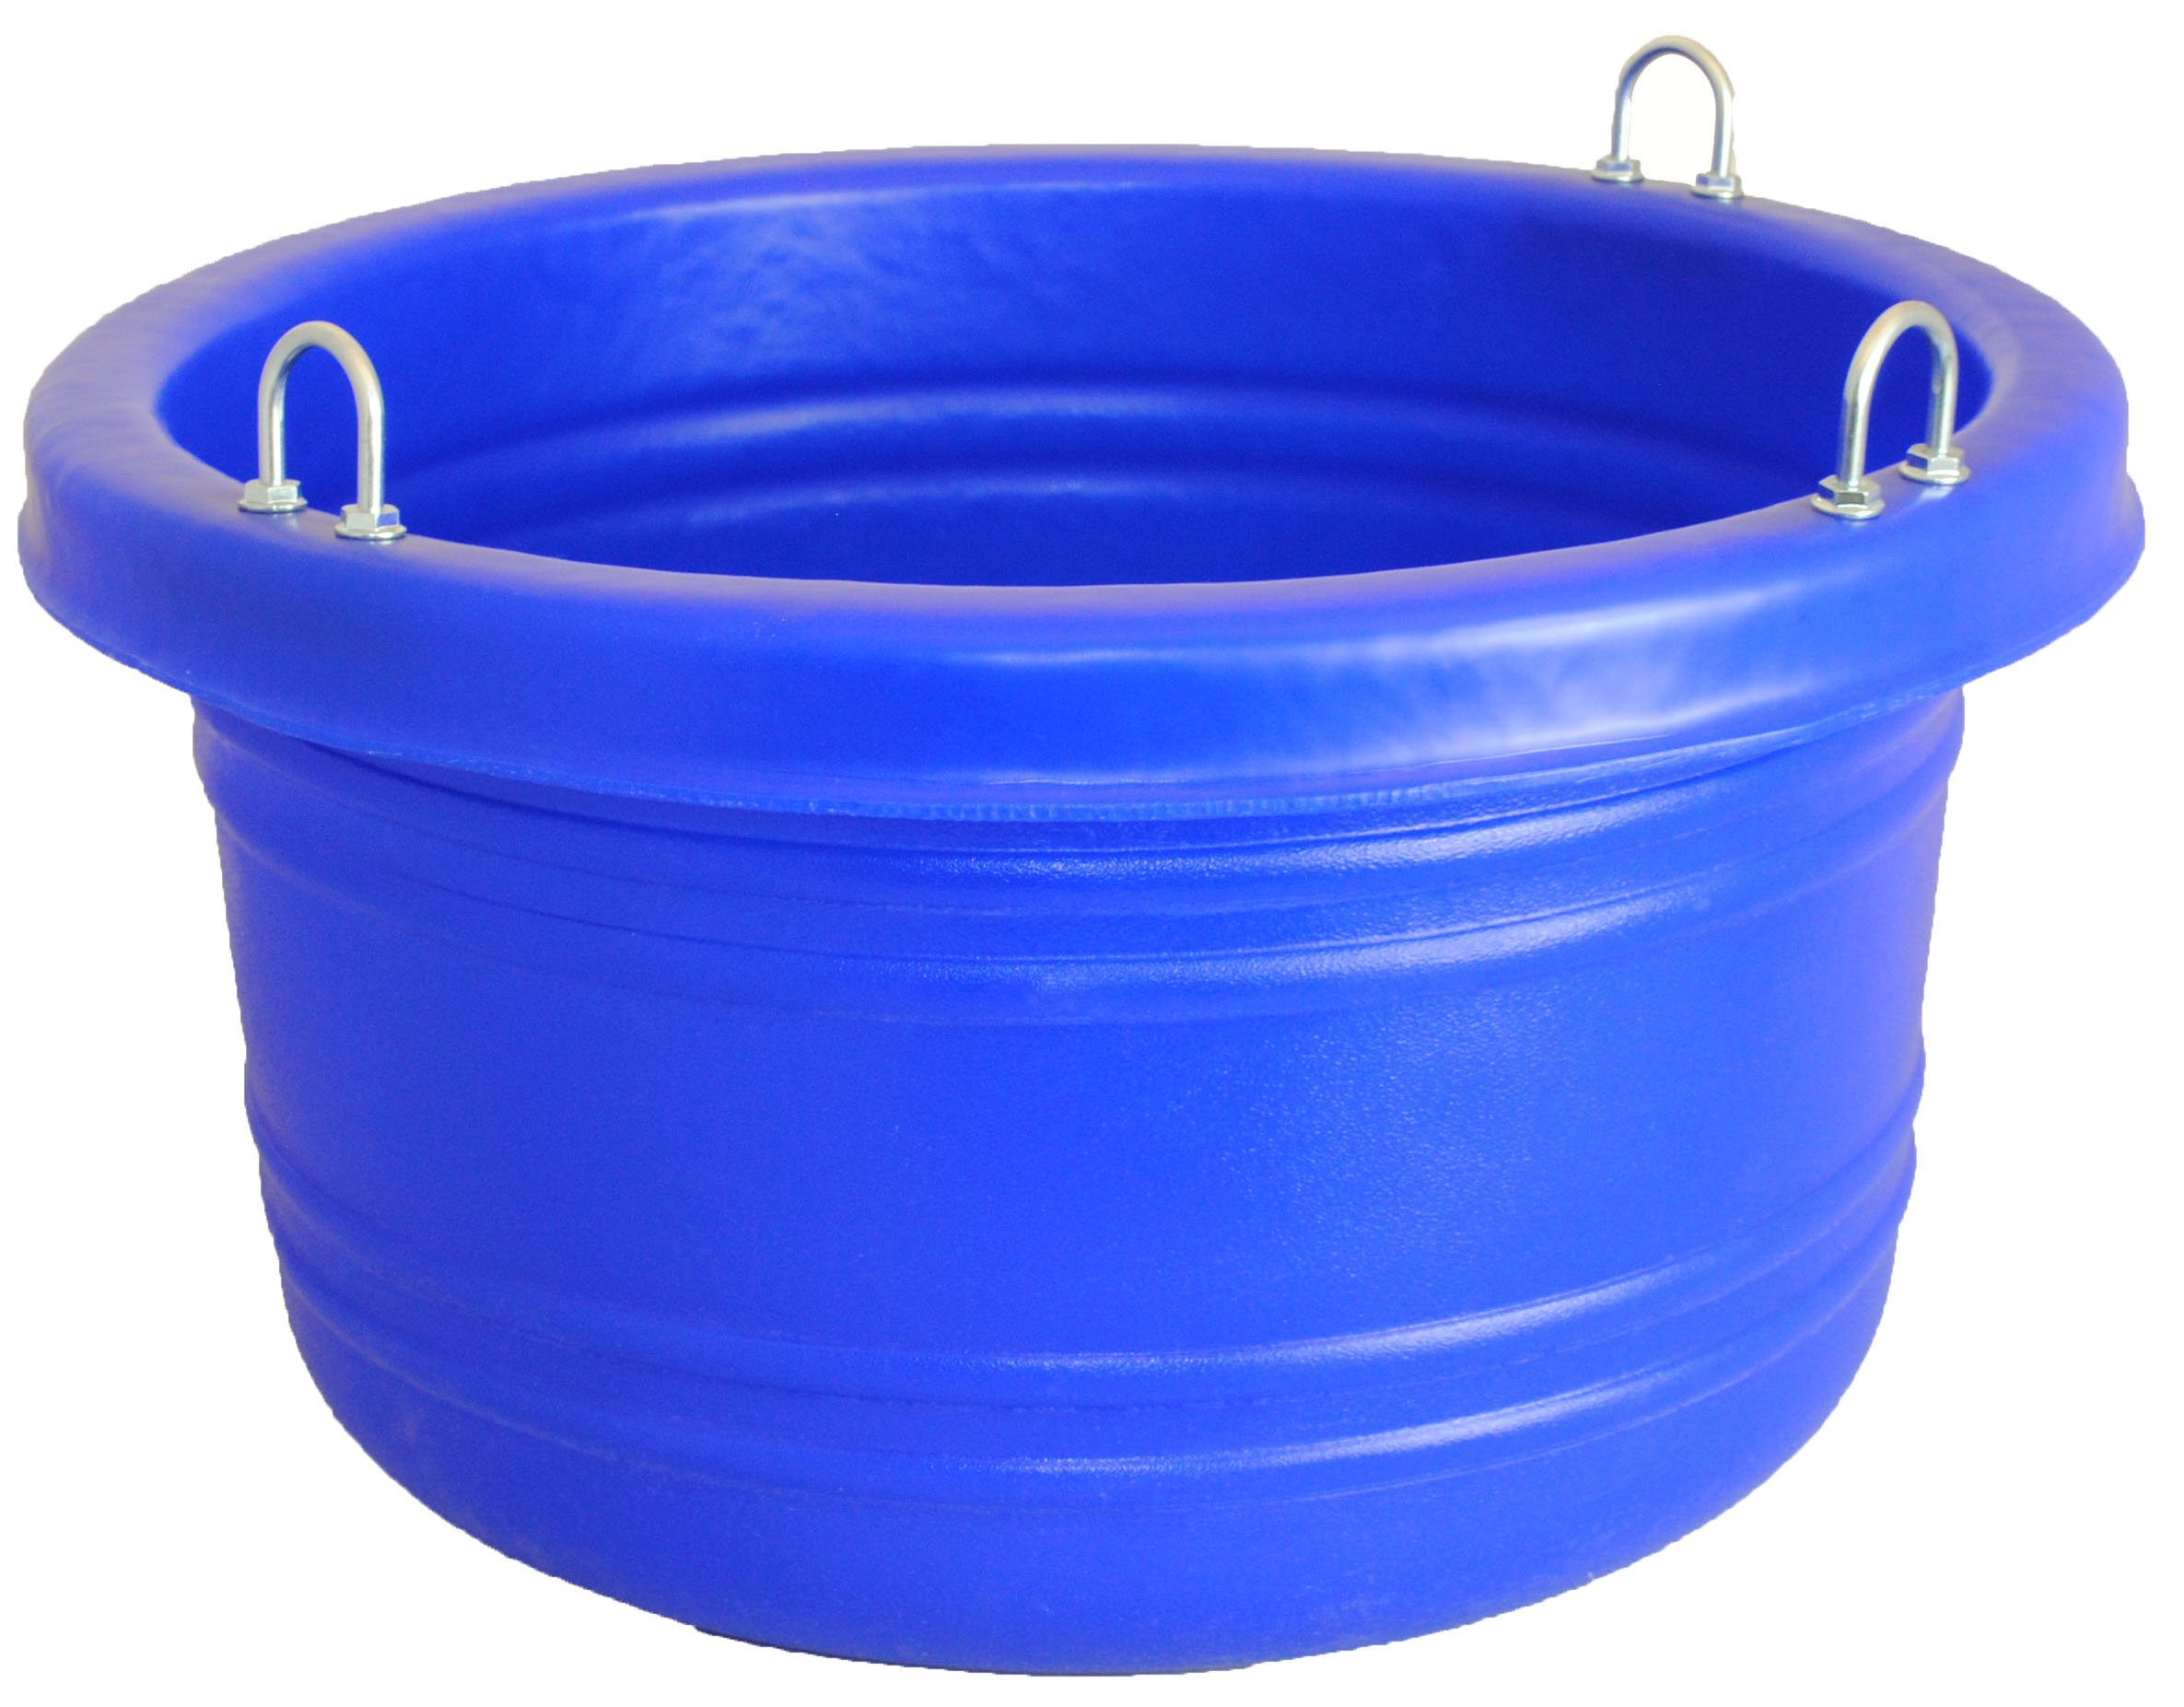 Horsemen's Pride 30-Quart Feed Tub, Blue